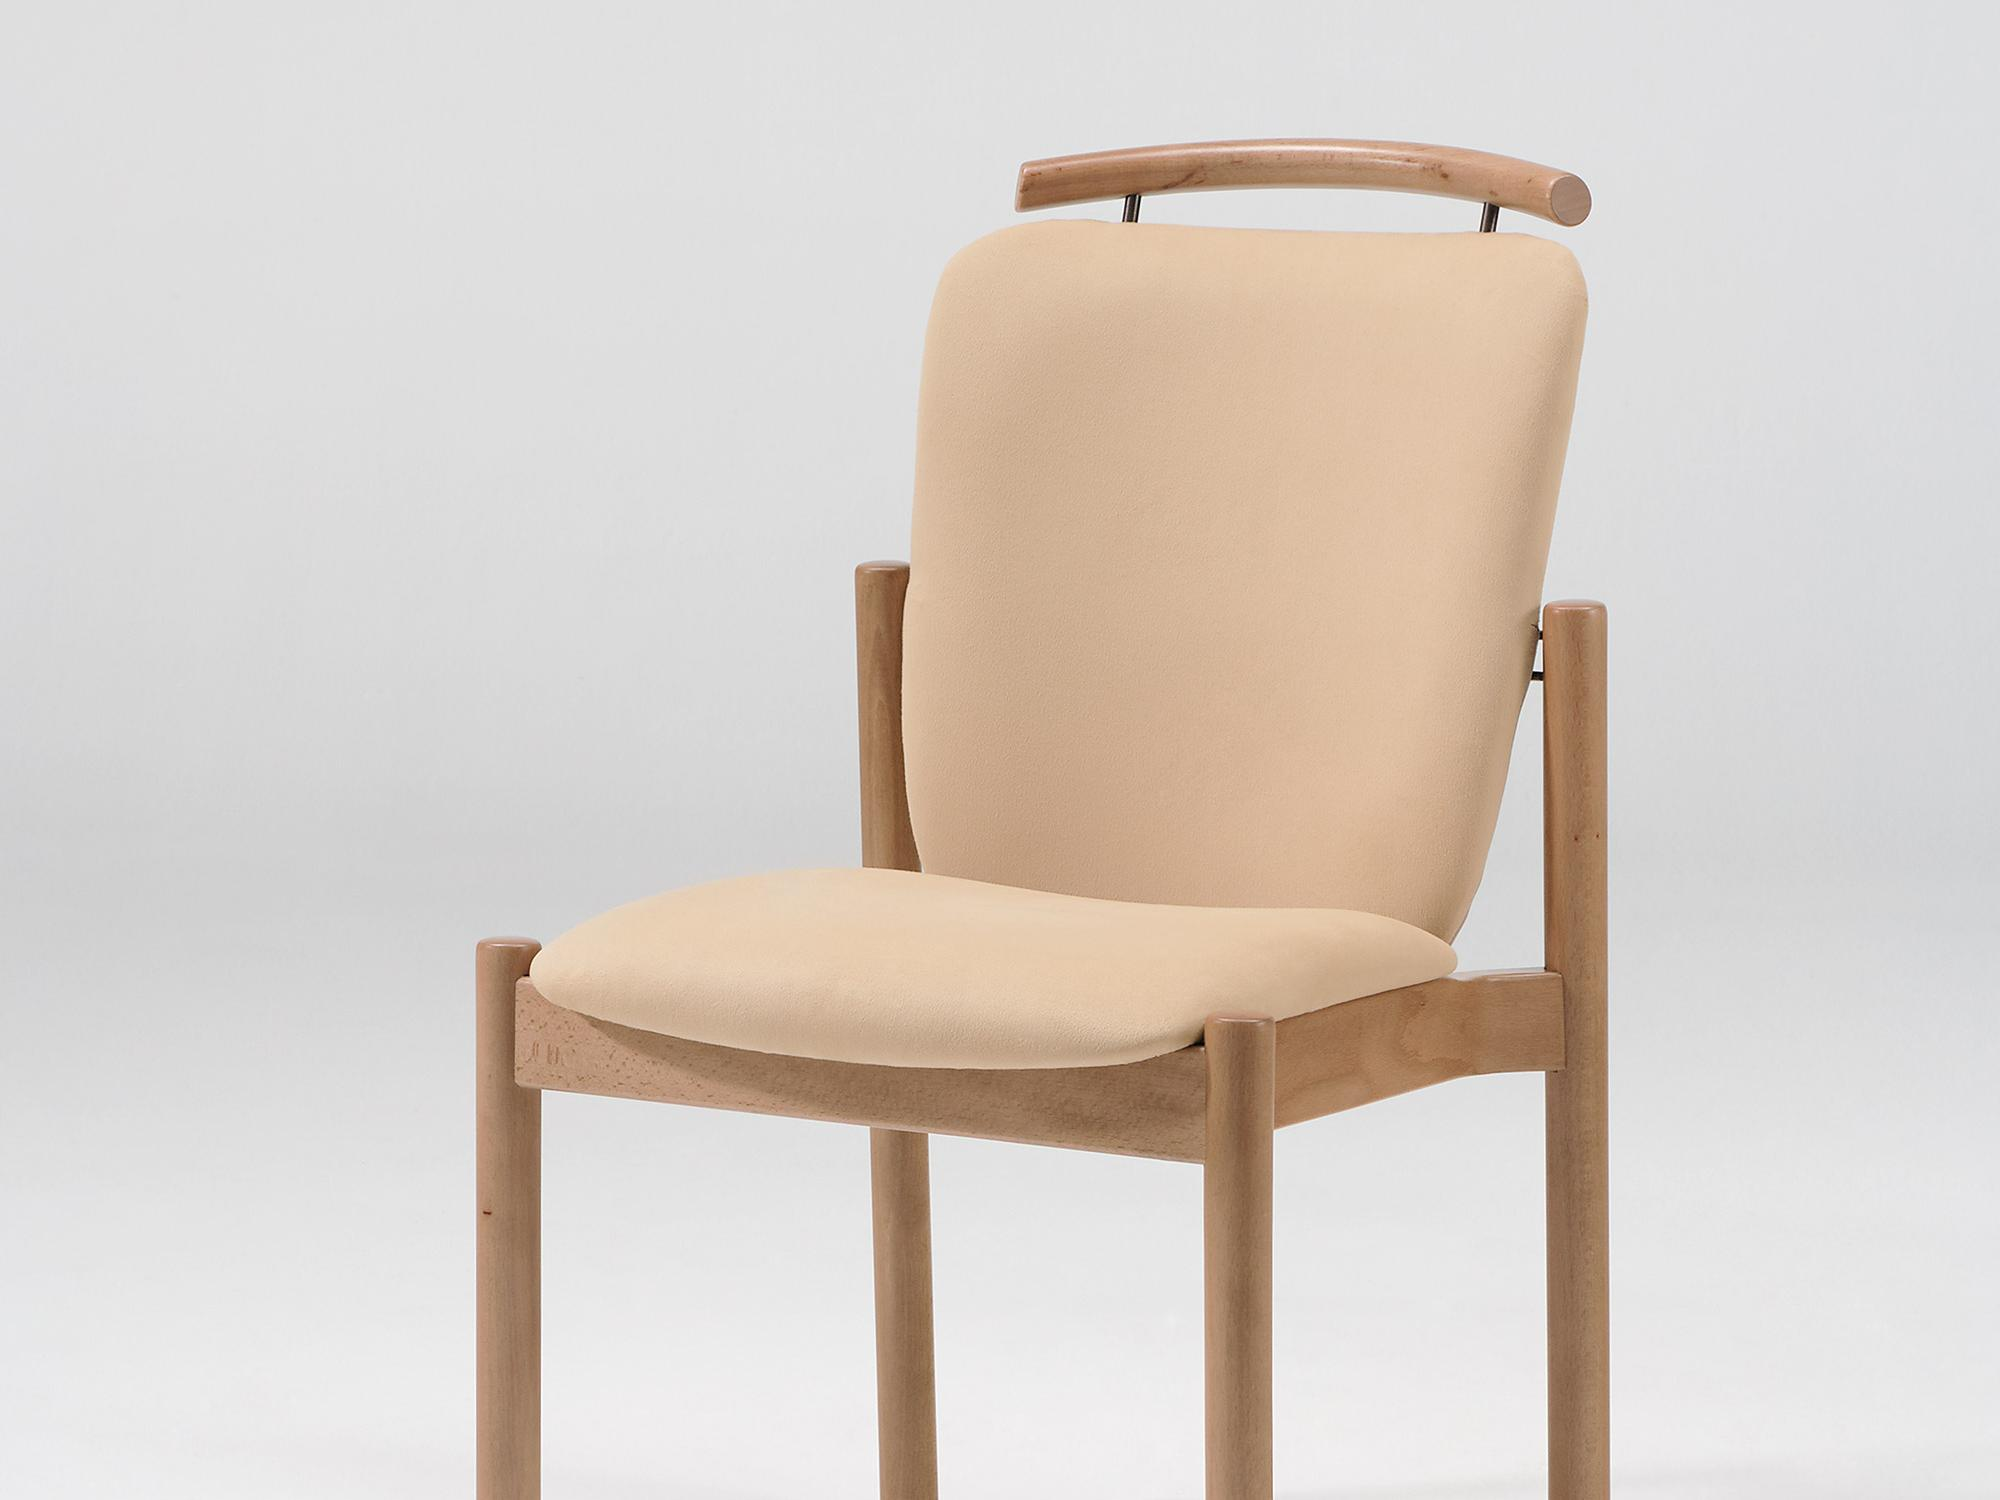 The Optimo as a stacking chair with handle